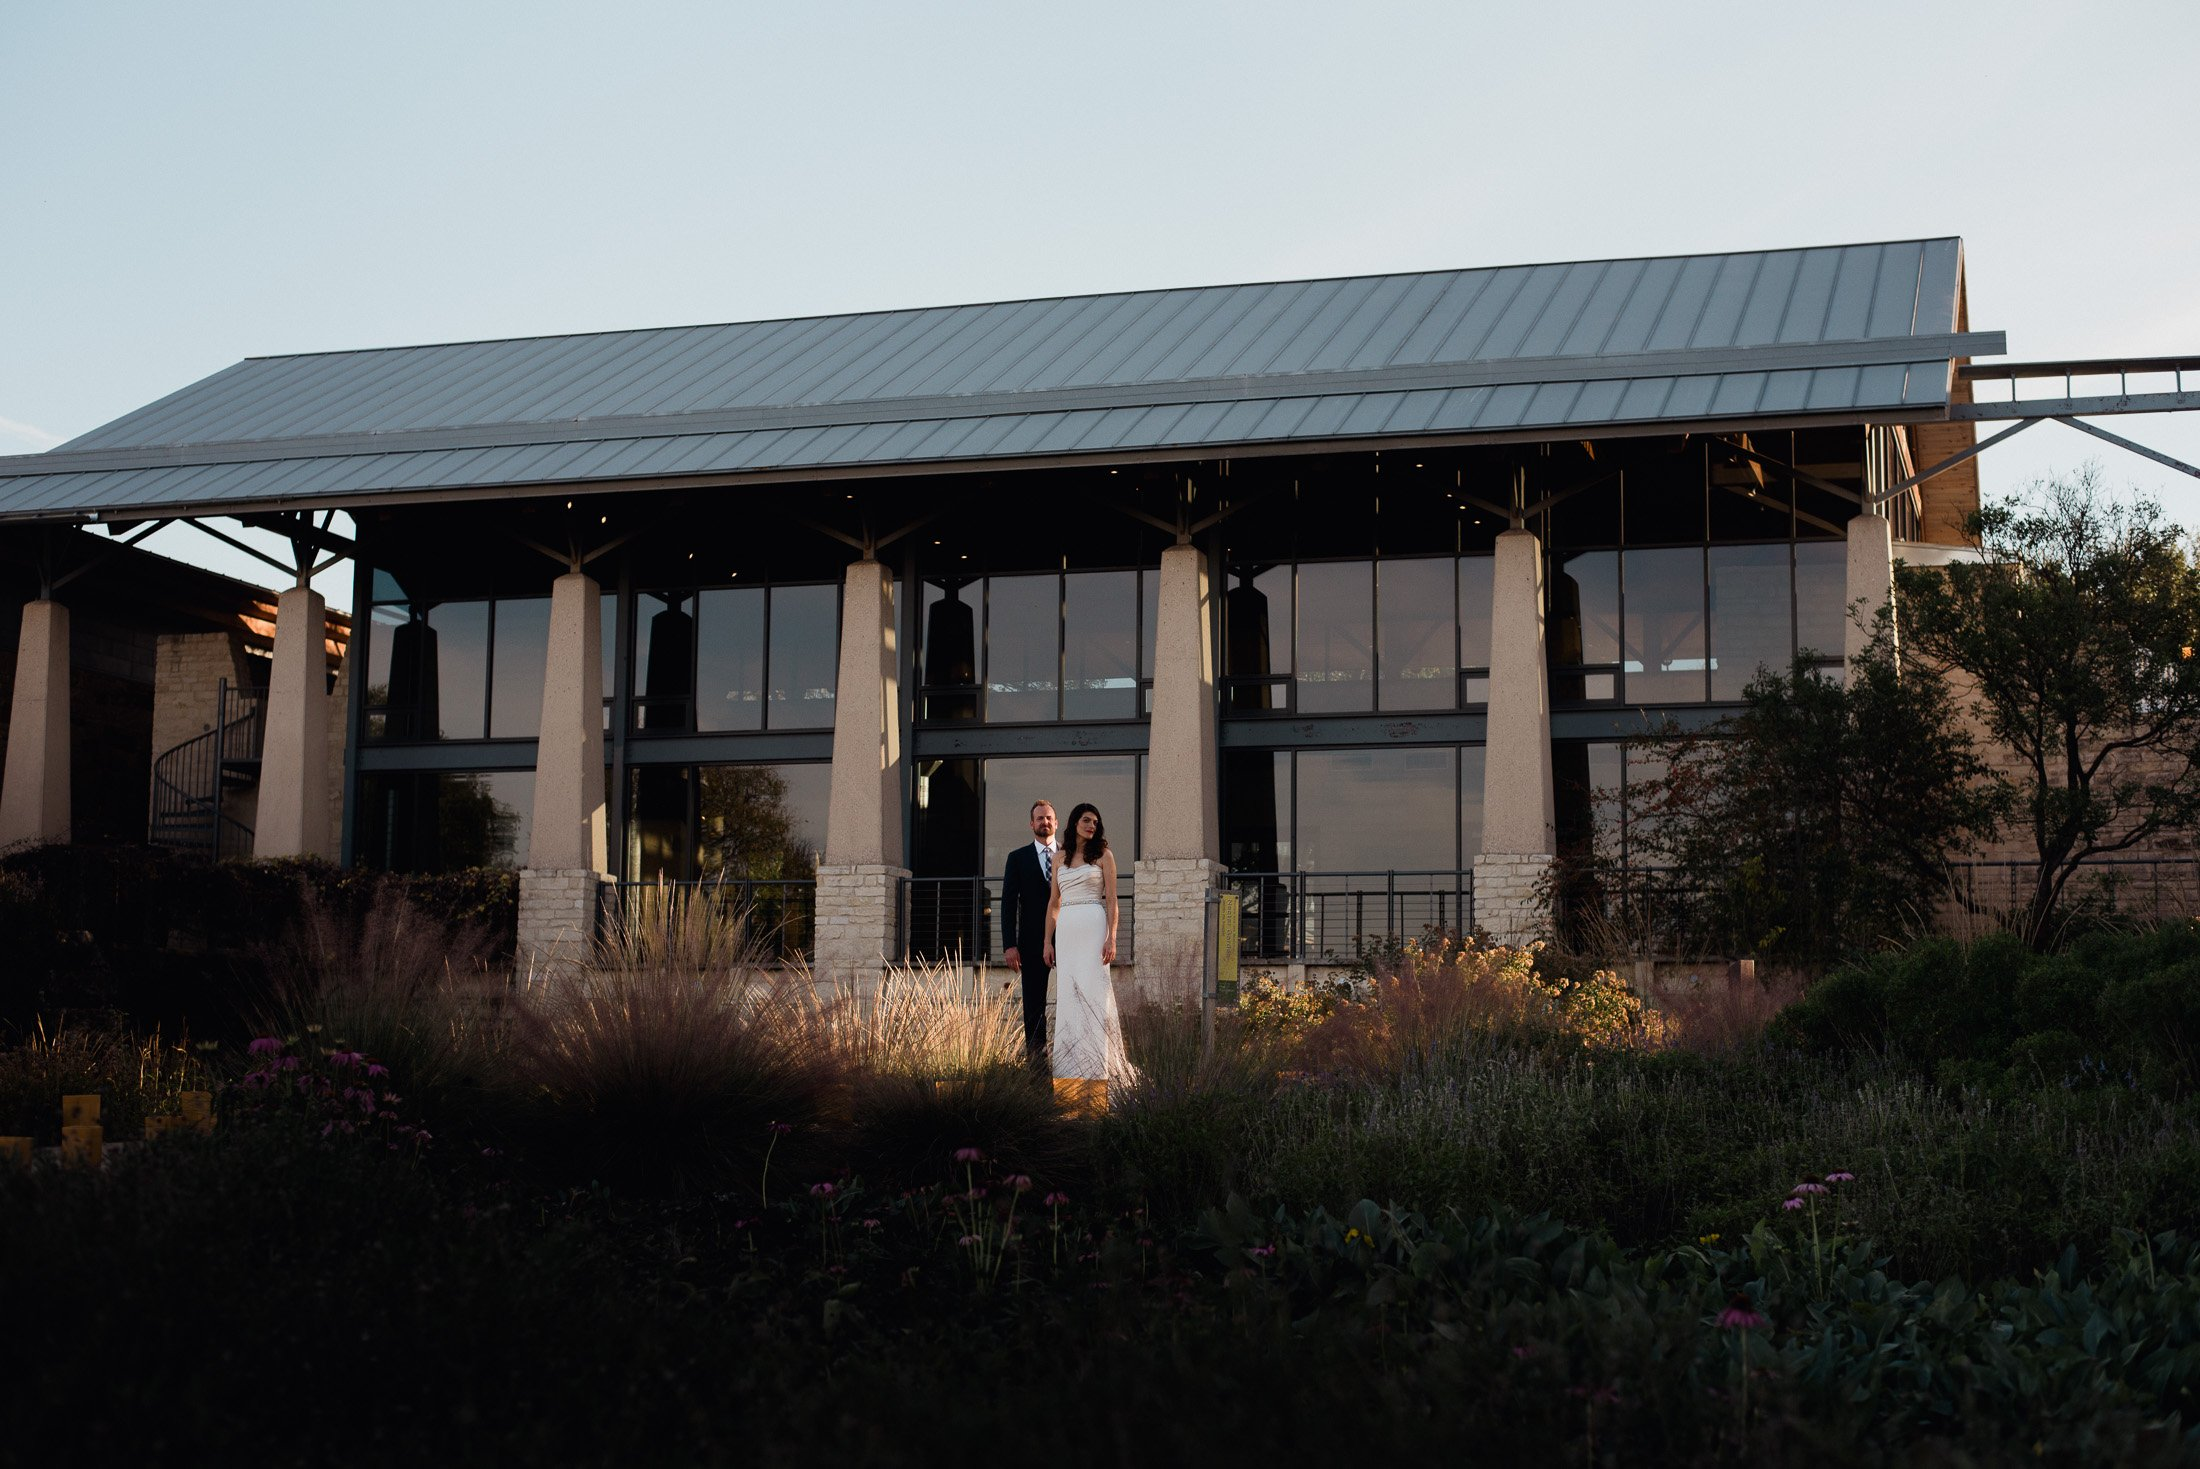 leah and dan at their wildflower center wedding in austin